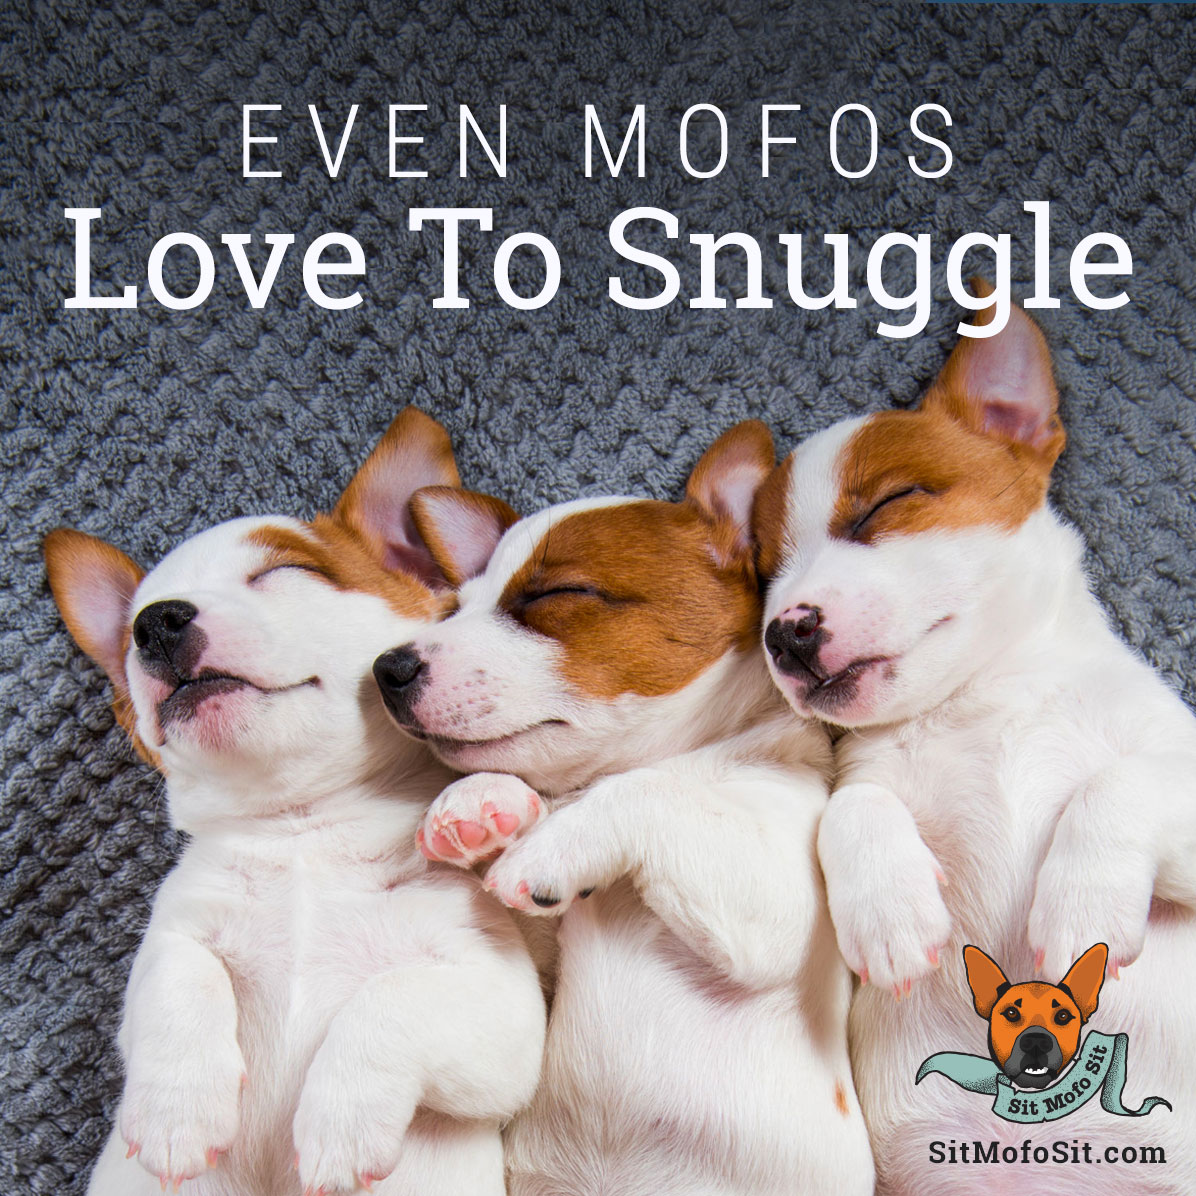 Sit Mofo Sit even mofos love to snuggle